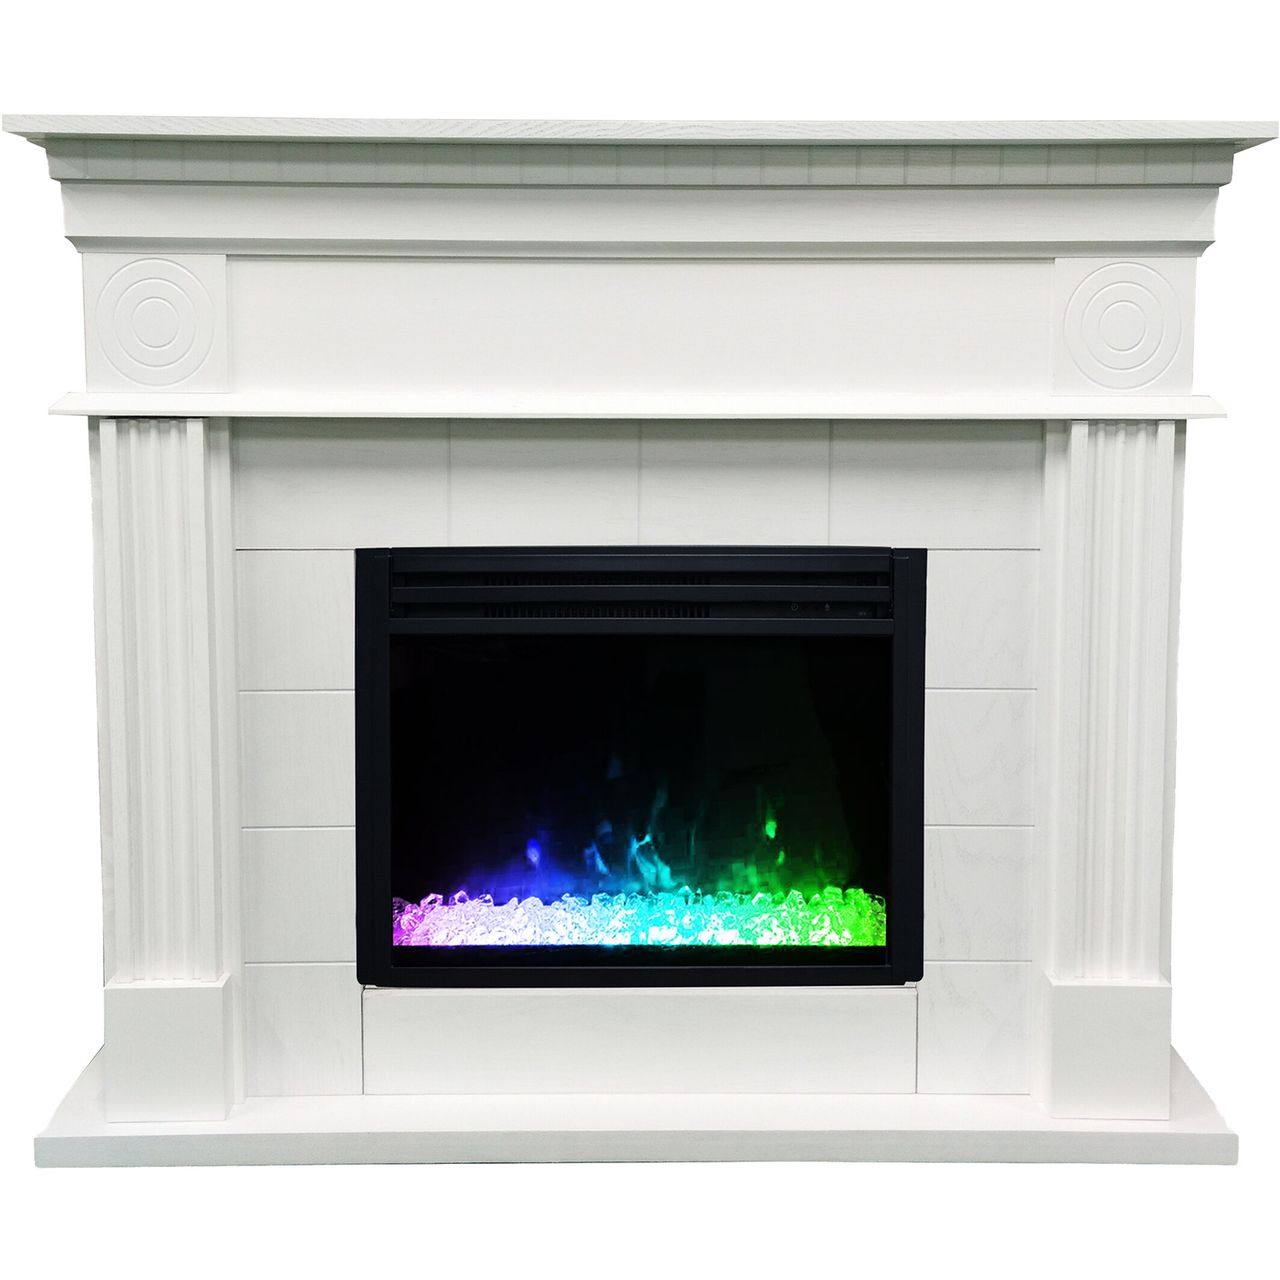 "Cambridge 47.8"" Shelby Electric Fireplace Mantel - White"